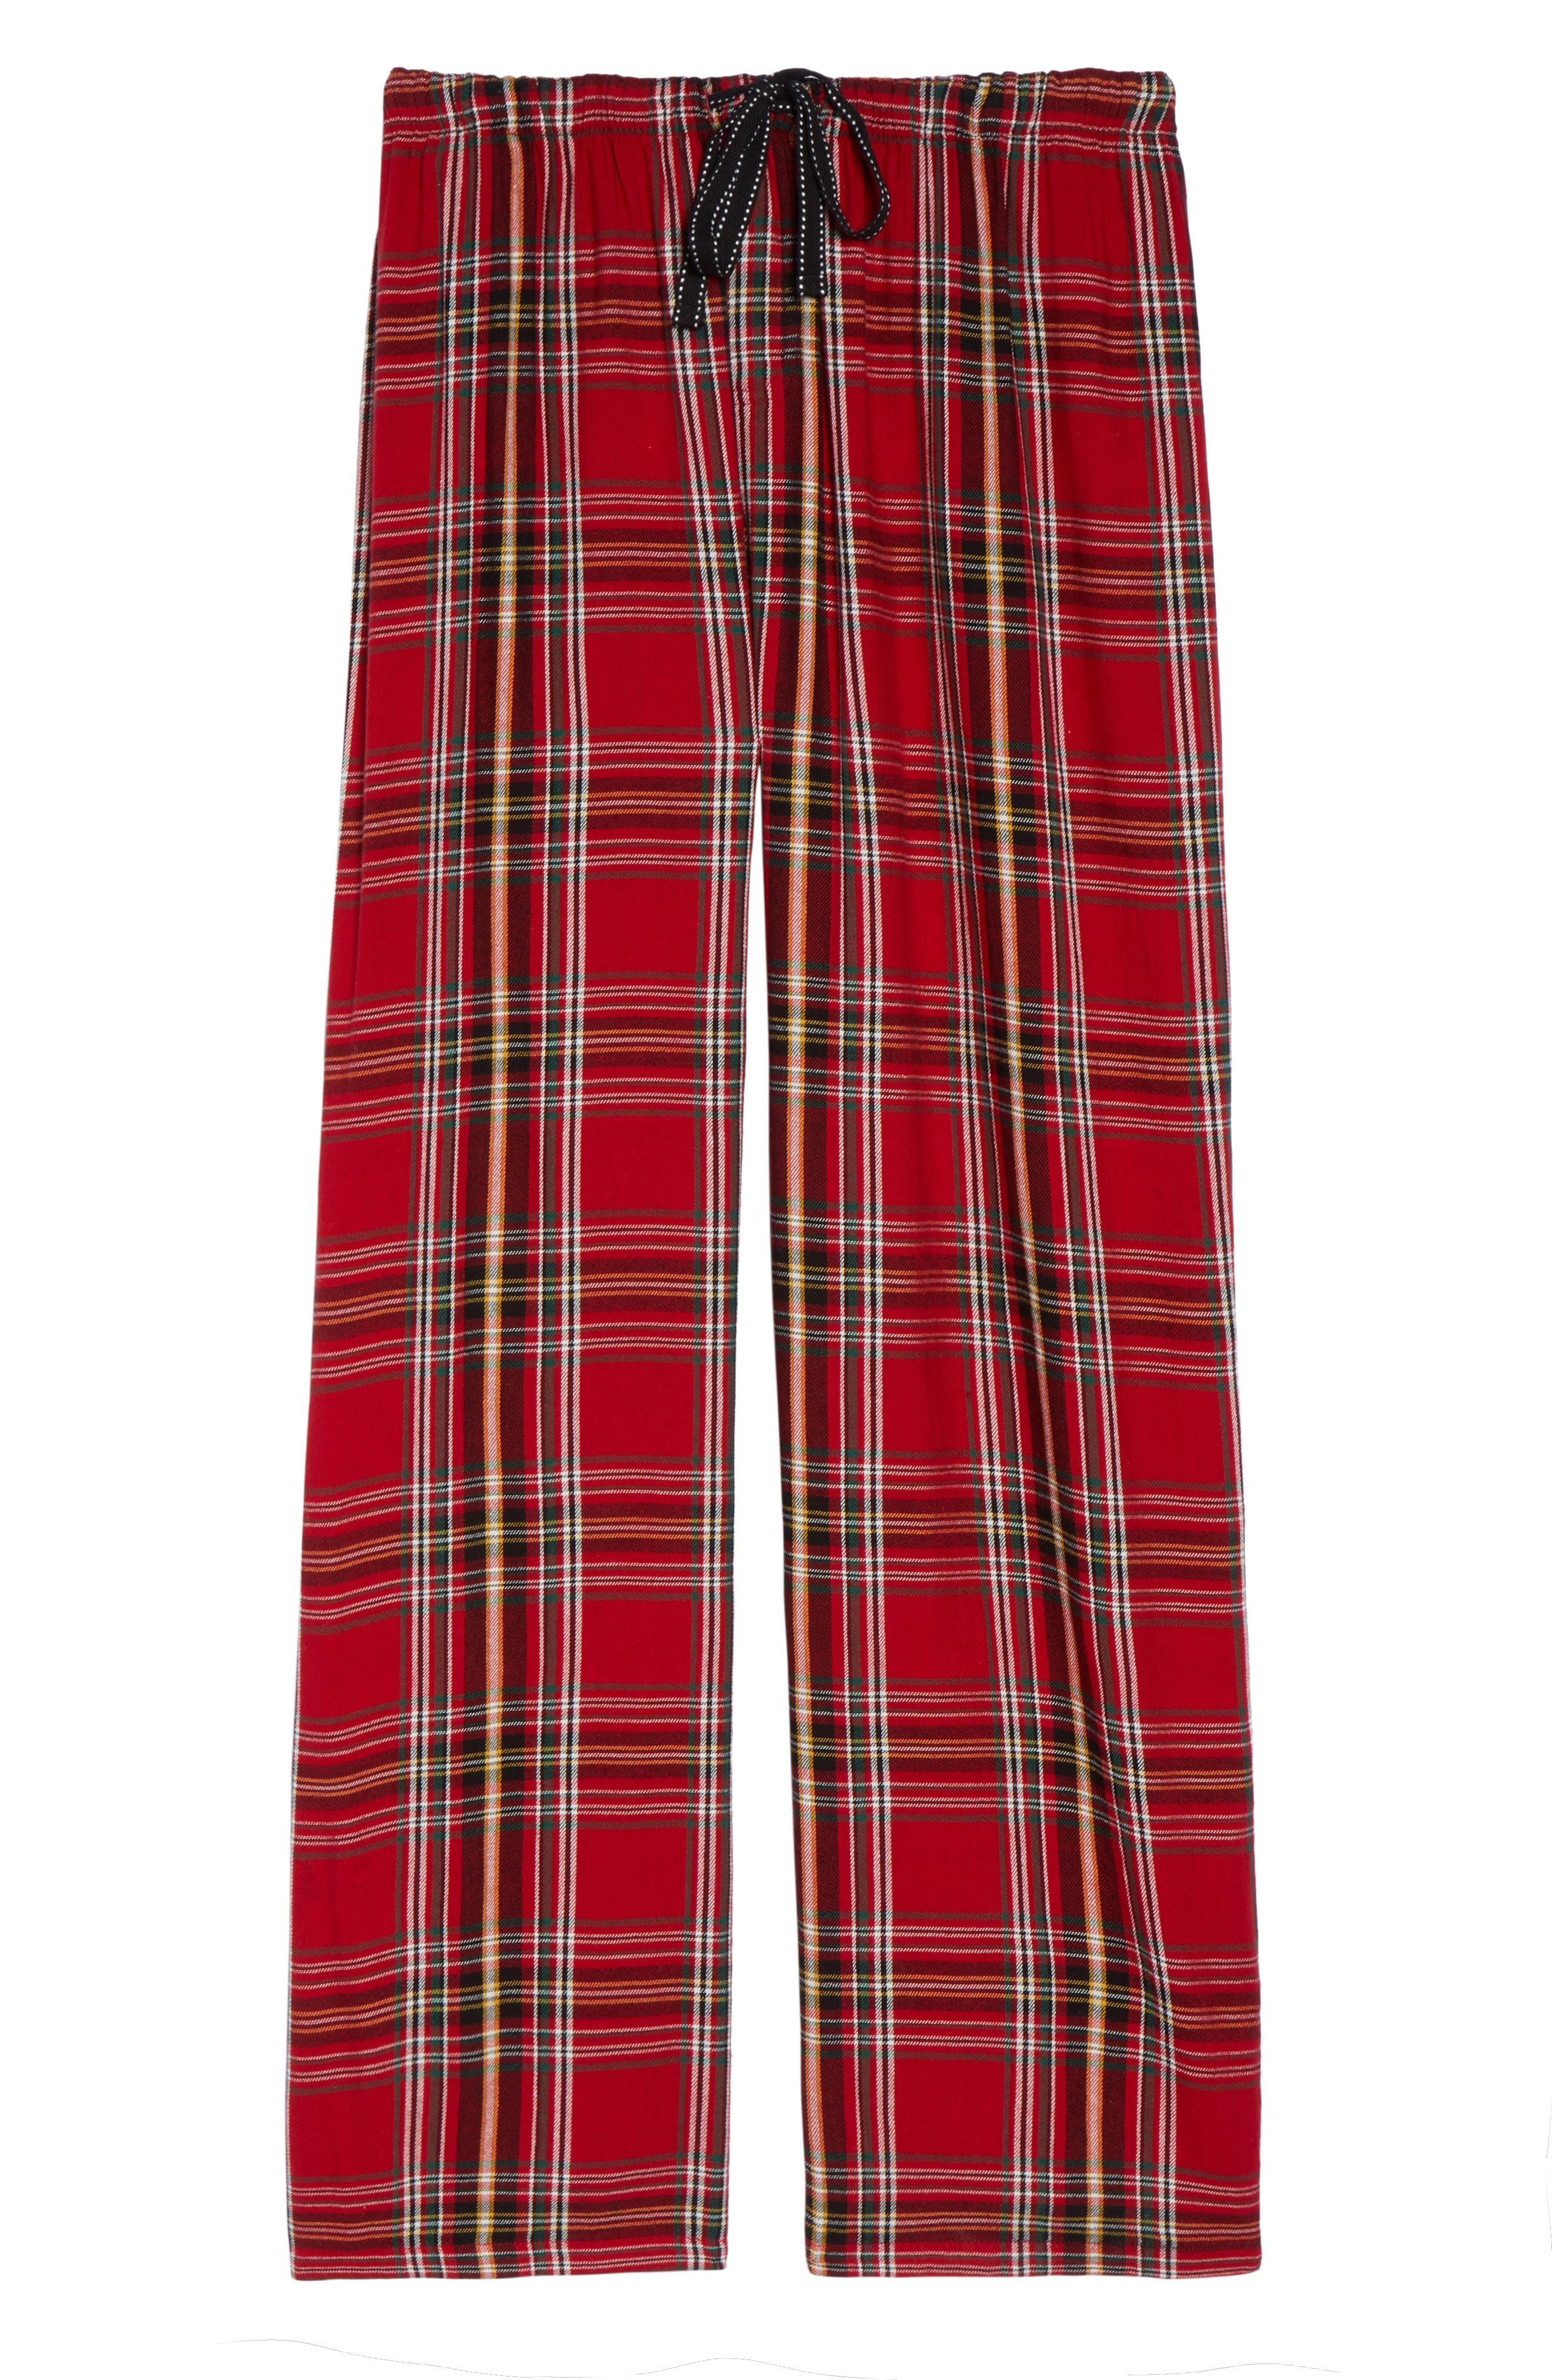 Plaid Flannel Pajama Pants,                             Alternate thumbnail 4, color,                             Brick